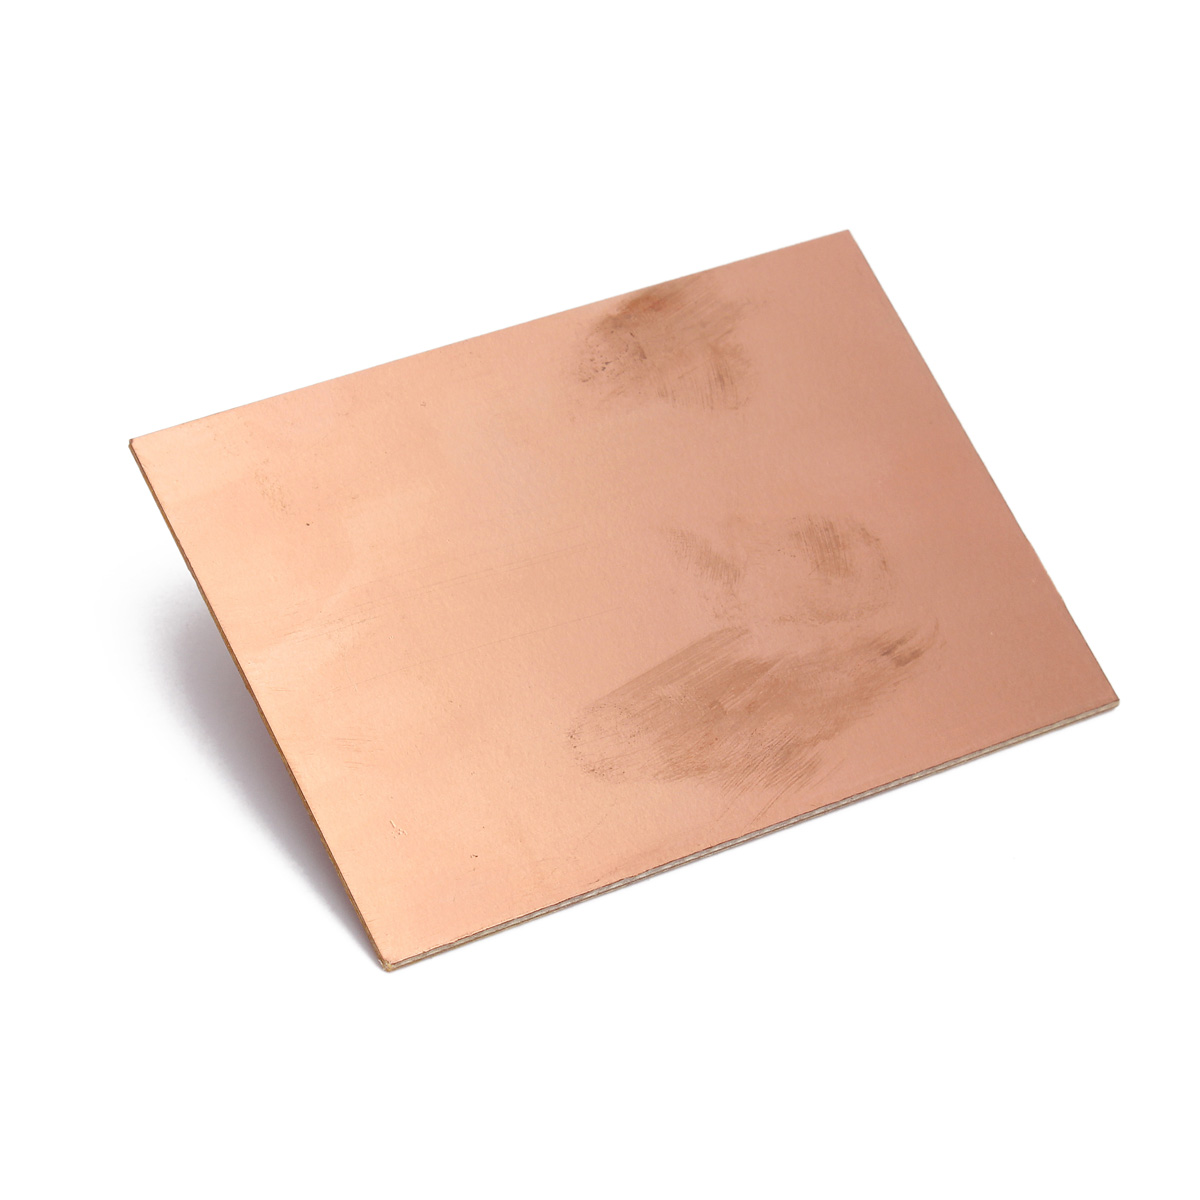 1pcs PCB 70x100x1.5mm Single Side Copper Clad Plate DIY One Side Copper Clad Single PCB Laminate Circuit Board Glass Fiber